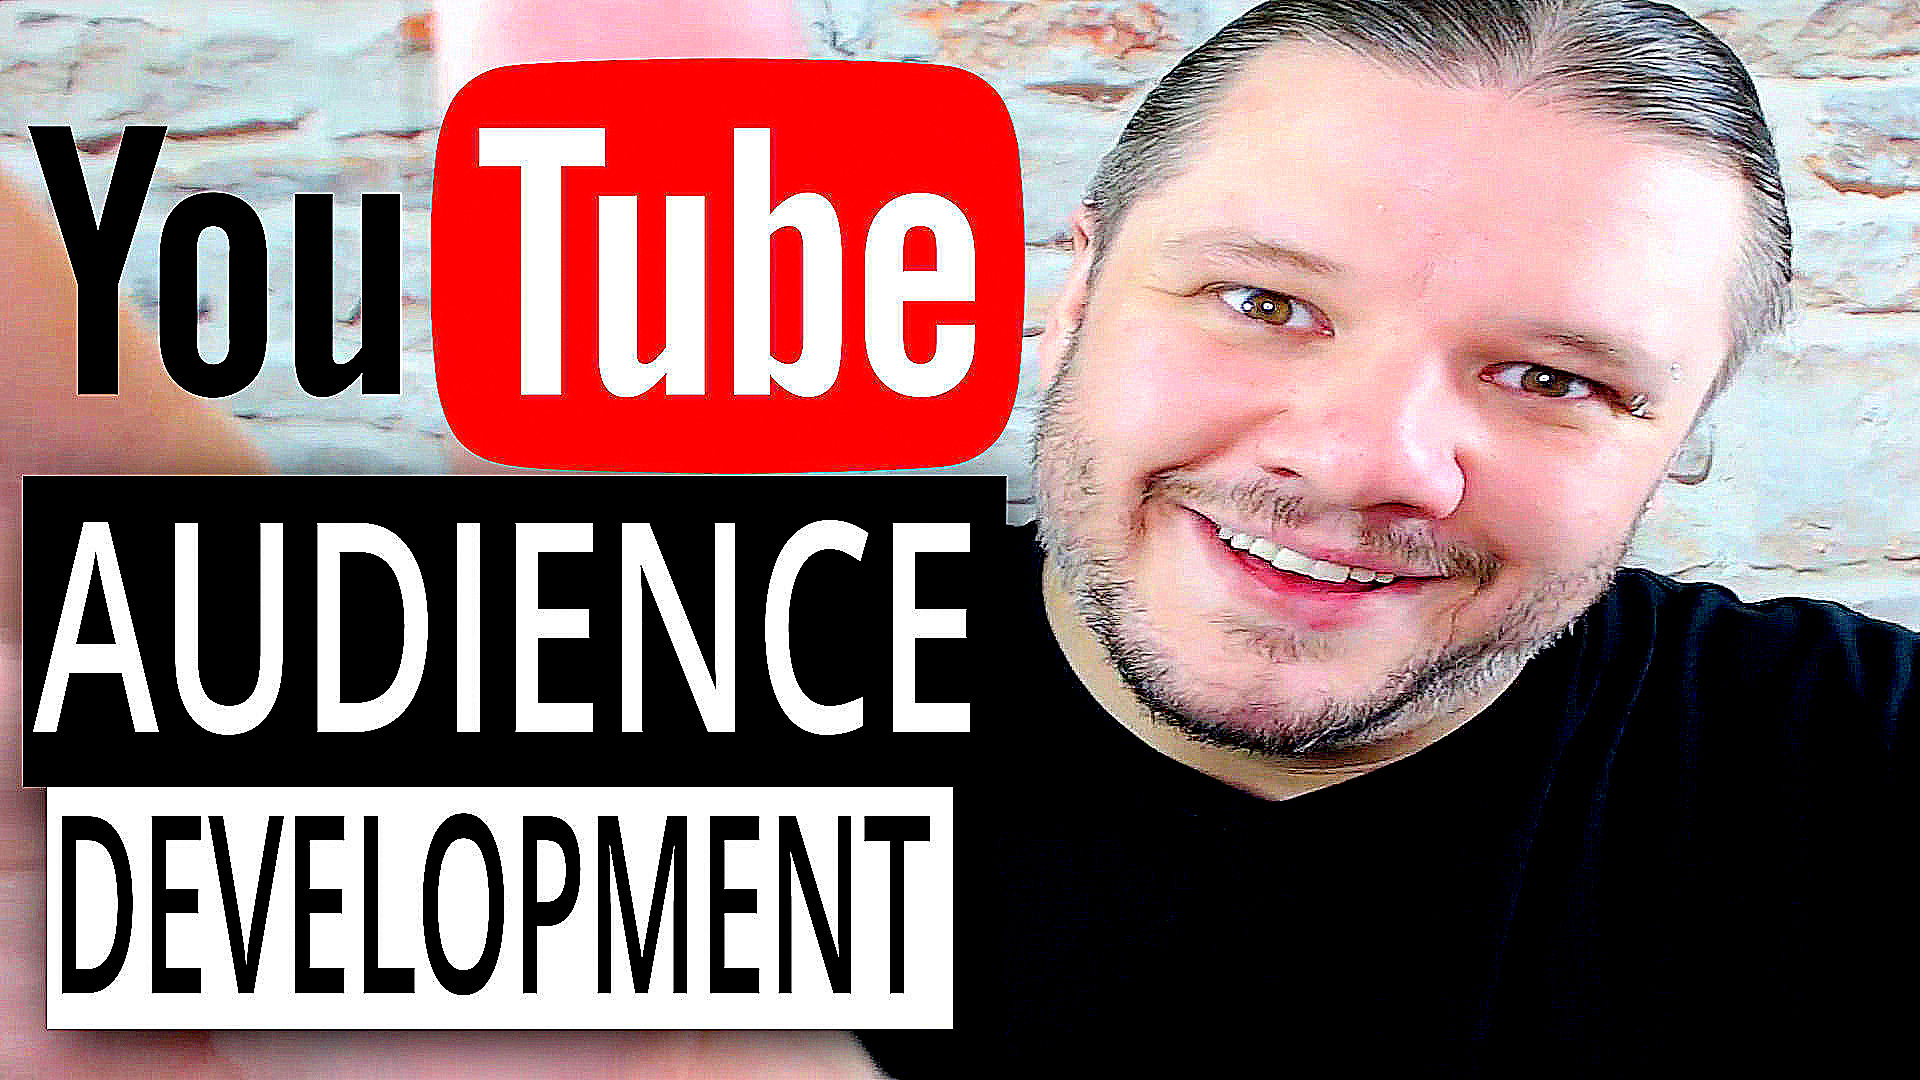 alan spicer,alanspicer,youtube tips,youtube tricks,asyt,YouTube Audience Development,Audience Development,YouTube Audience,Audience Development YouTube,Audience engagement,youtube engagement,increase channel engagement,channel engagement,youtube community,community,audience retention,youtube watch time,increase youtube watch time,boost channel authority,channel authority,youtube algorithm,spicer,advice,youtube audience development certification